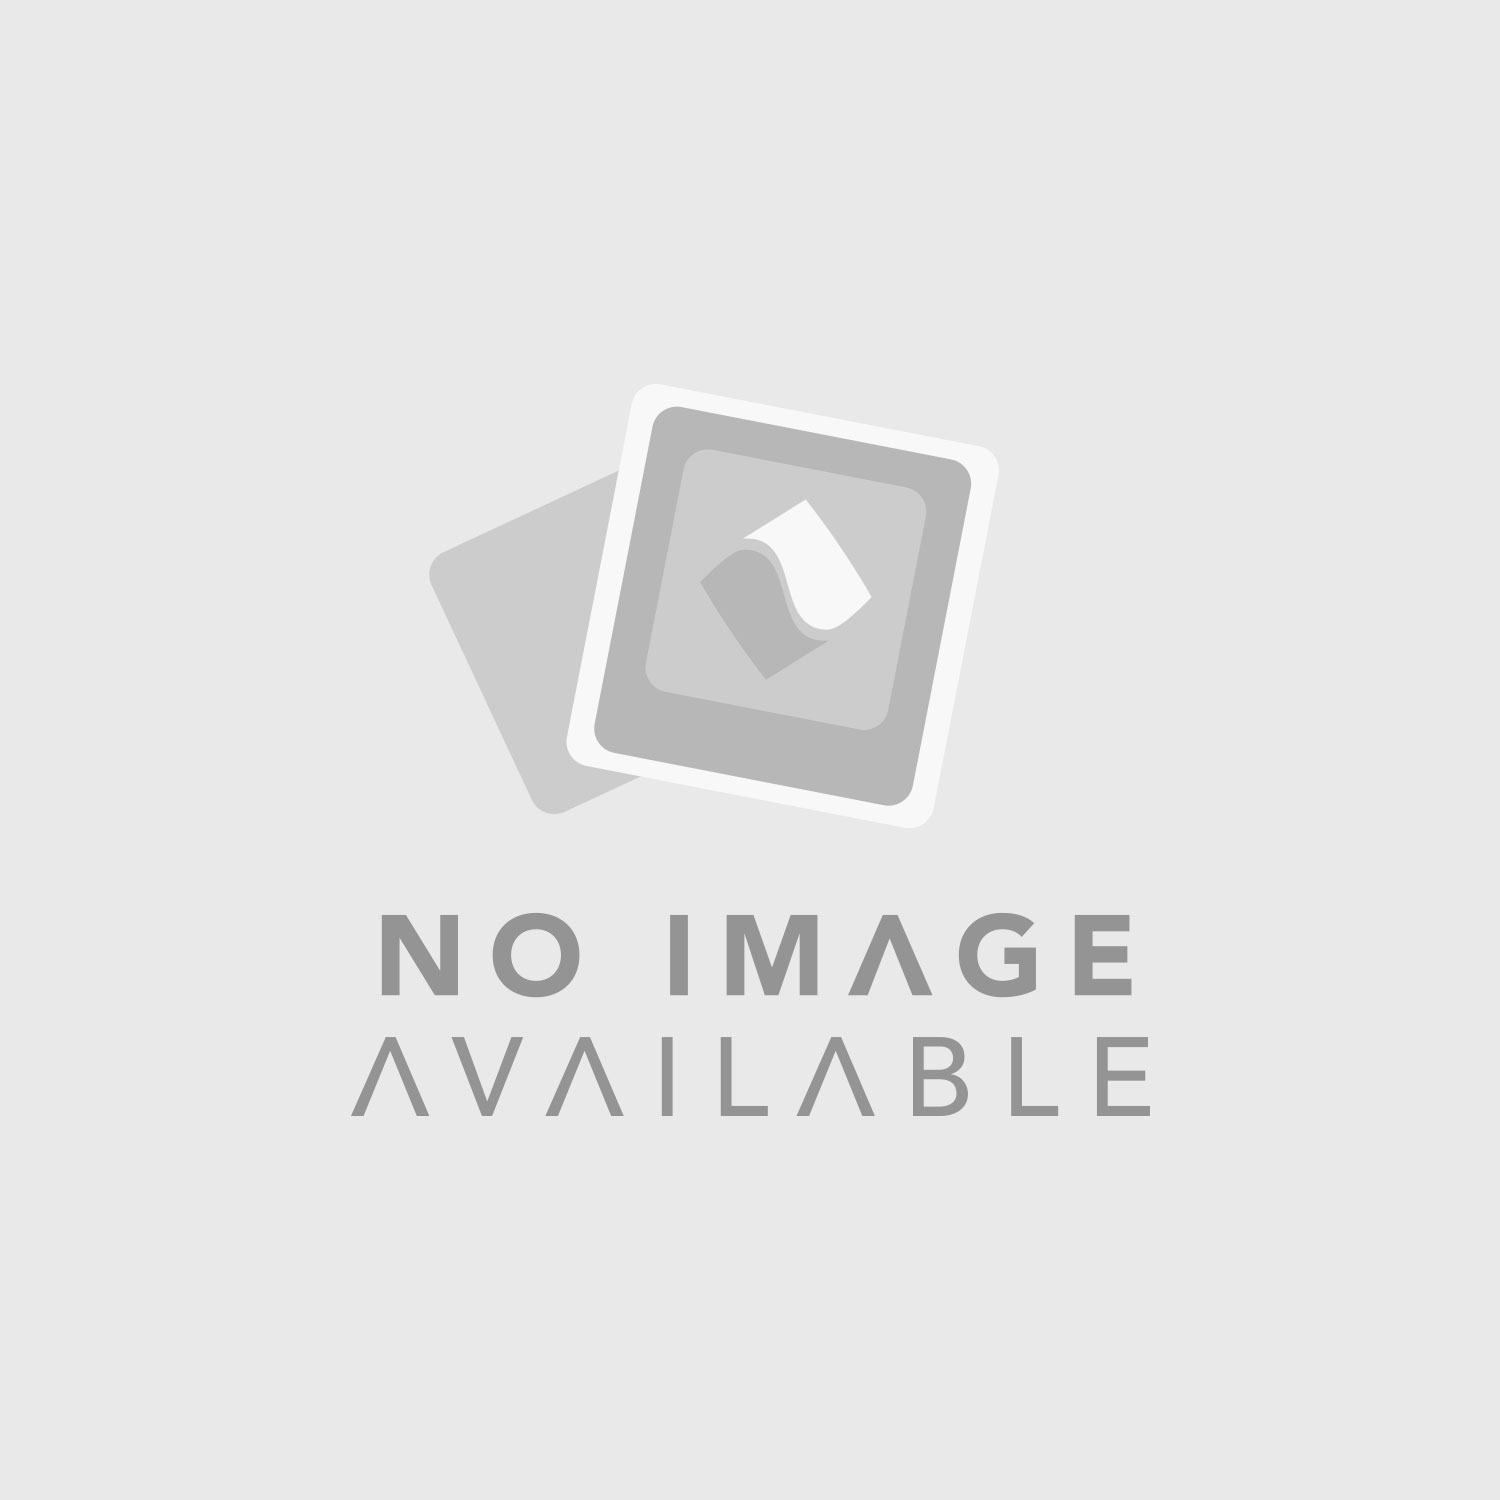 Rode RodeCaster Pro Ultimate 2 Guest Podcasting Bundle with PD-70 Mics (O.C. White Boom Arms)